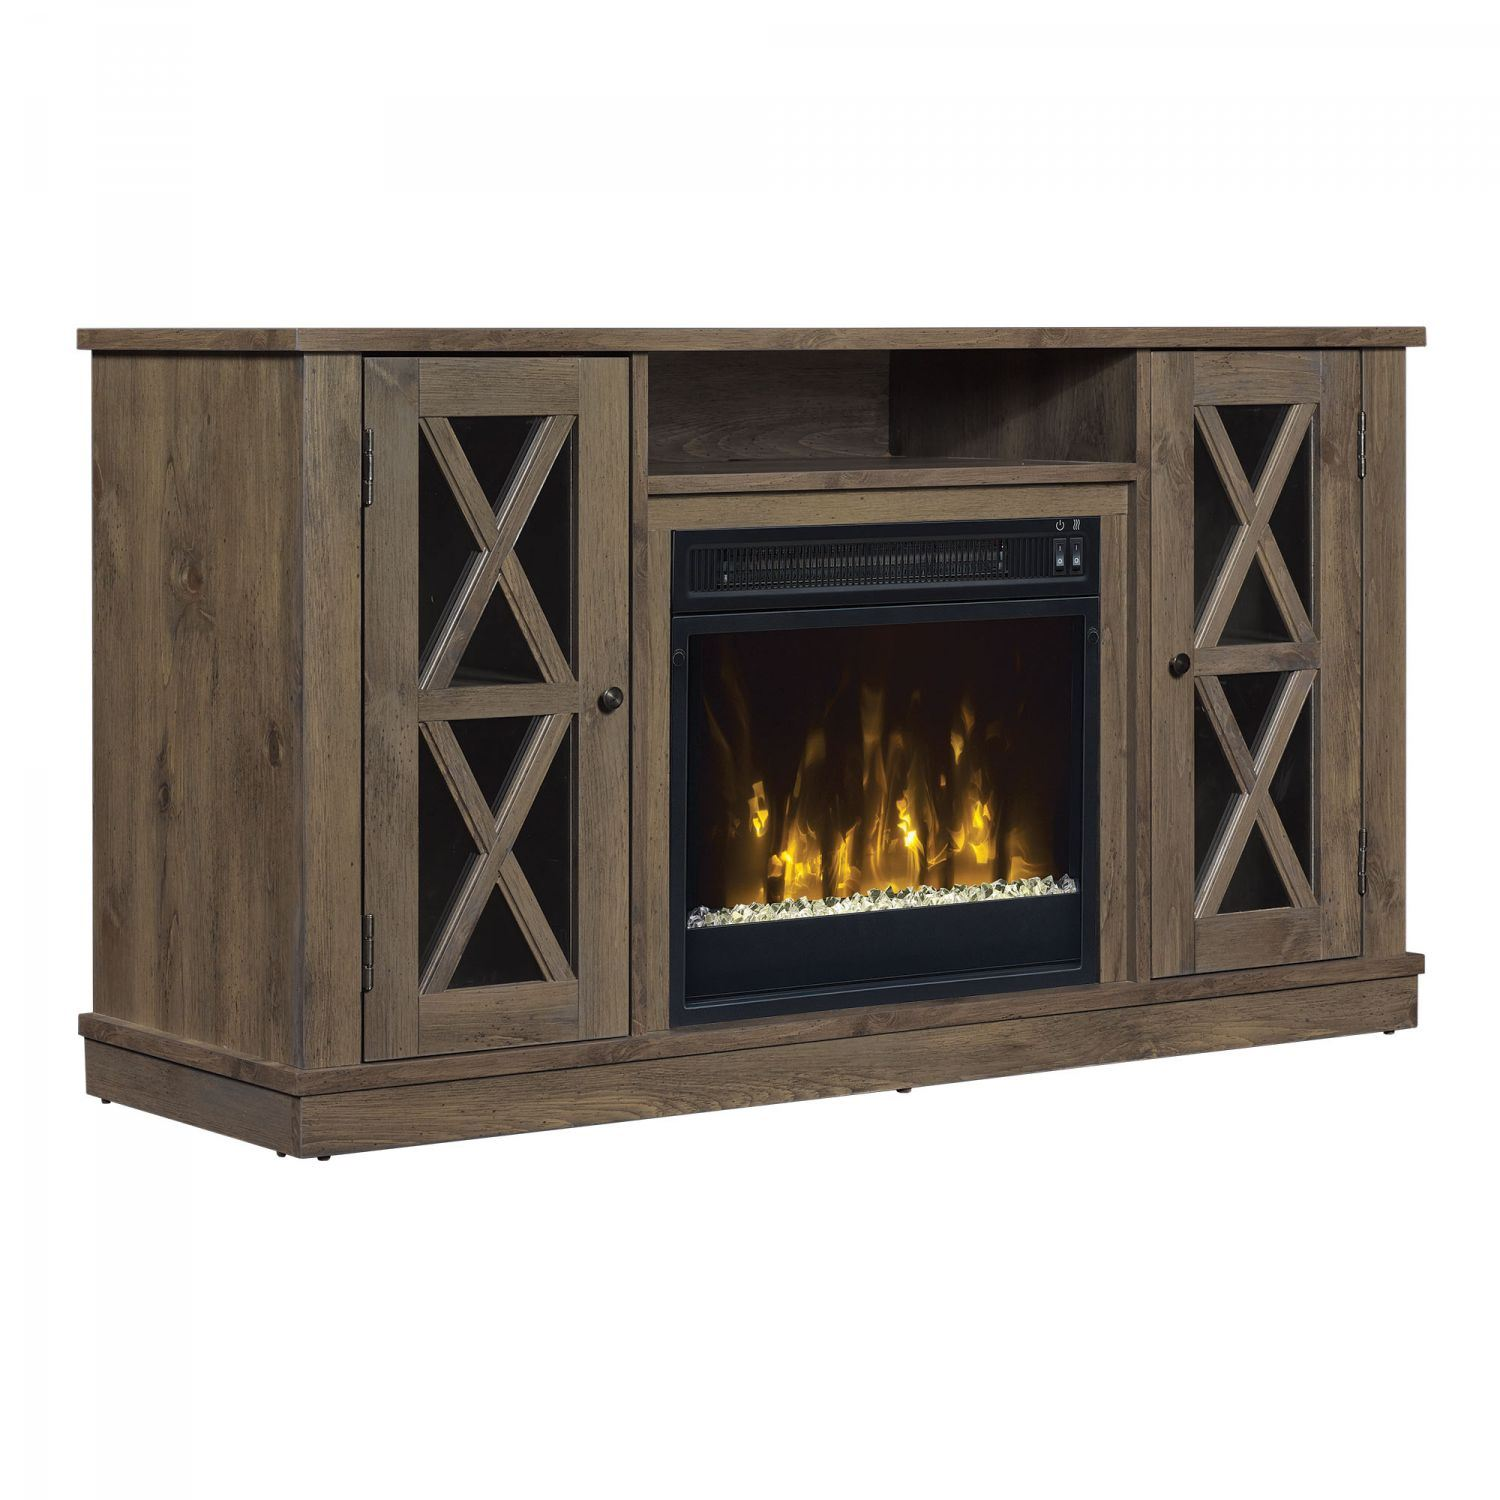 Bayport Tv Stand With Fireplace D 18mm6092 Pi14s Classic Flame